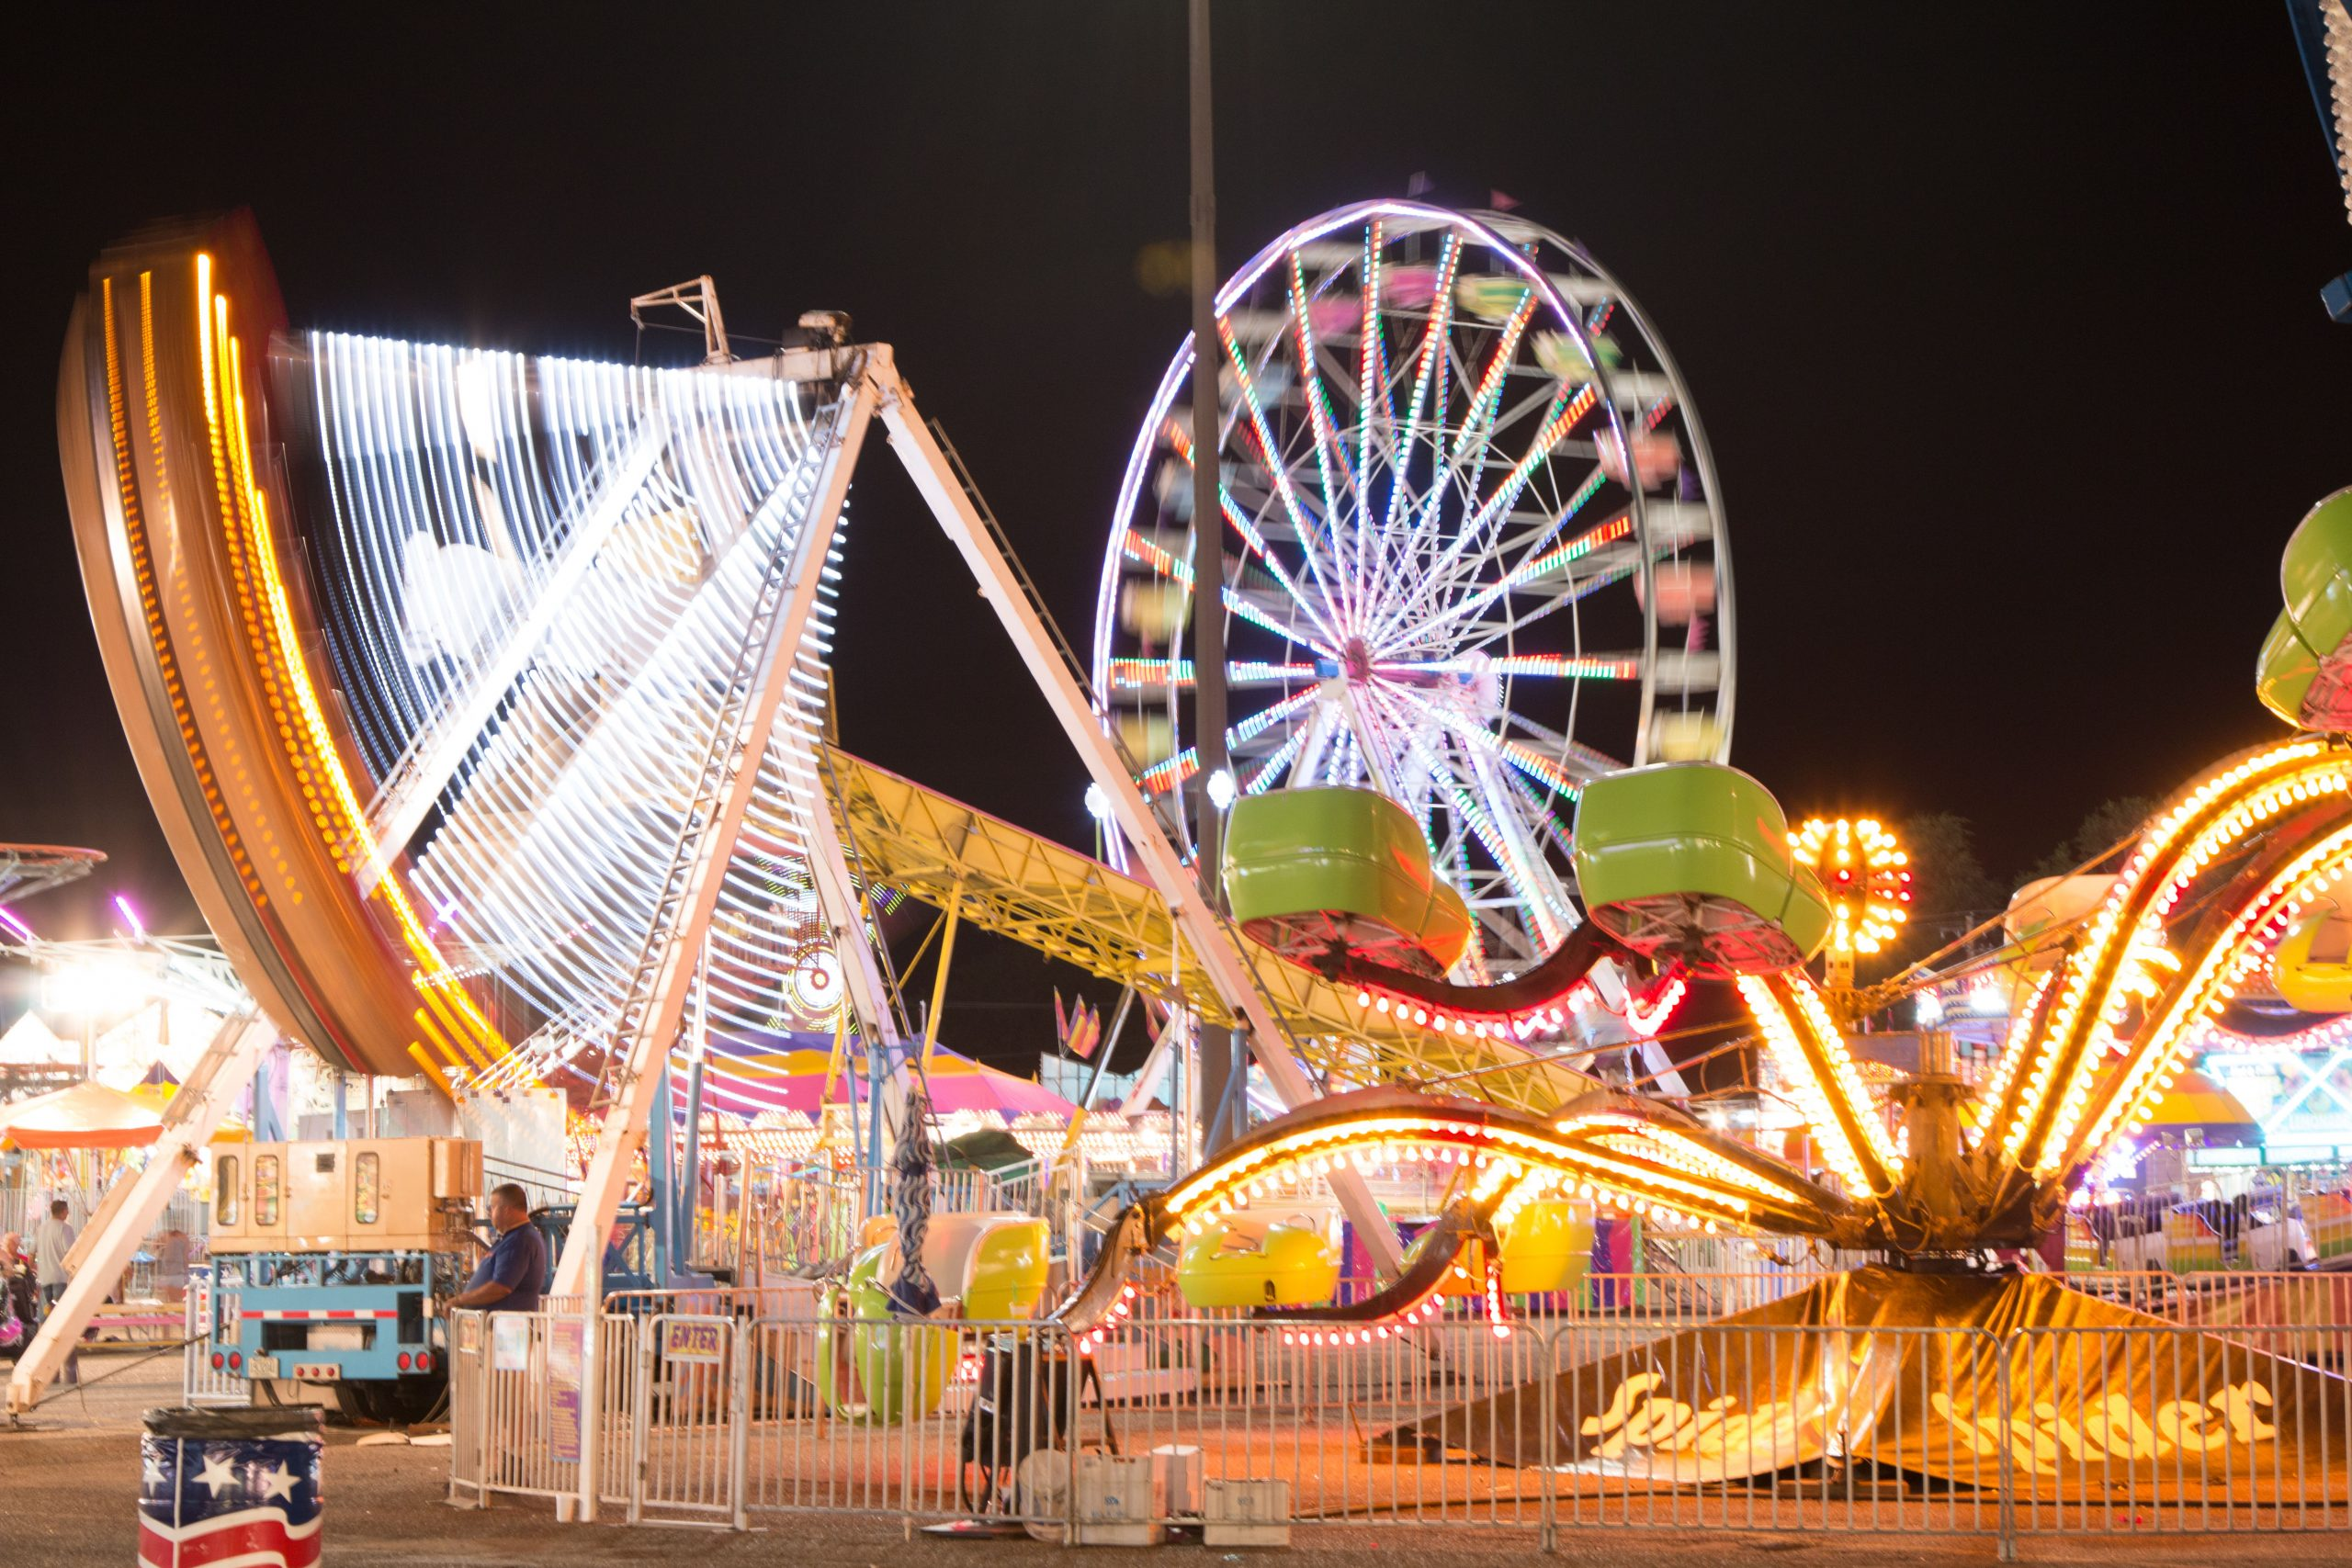 The carnival at the Colorado State Fair in Pueblo.